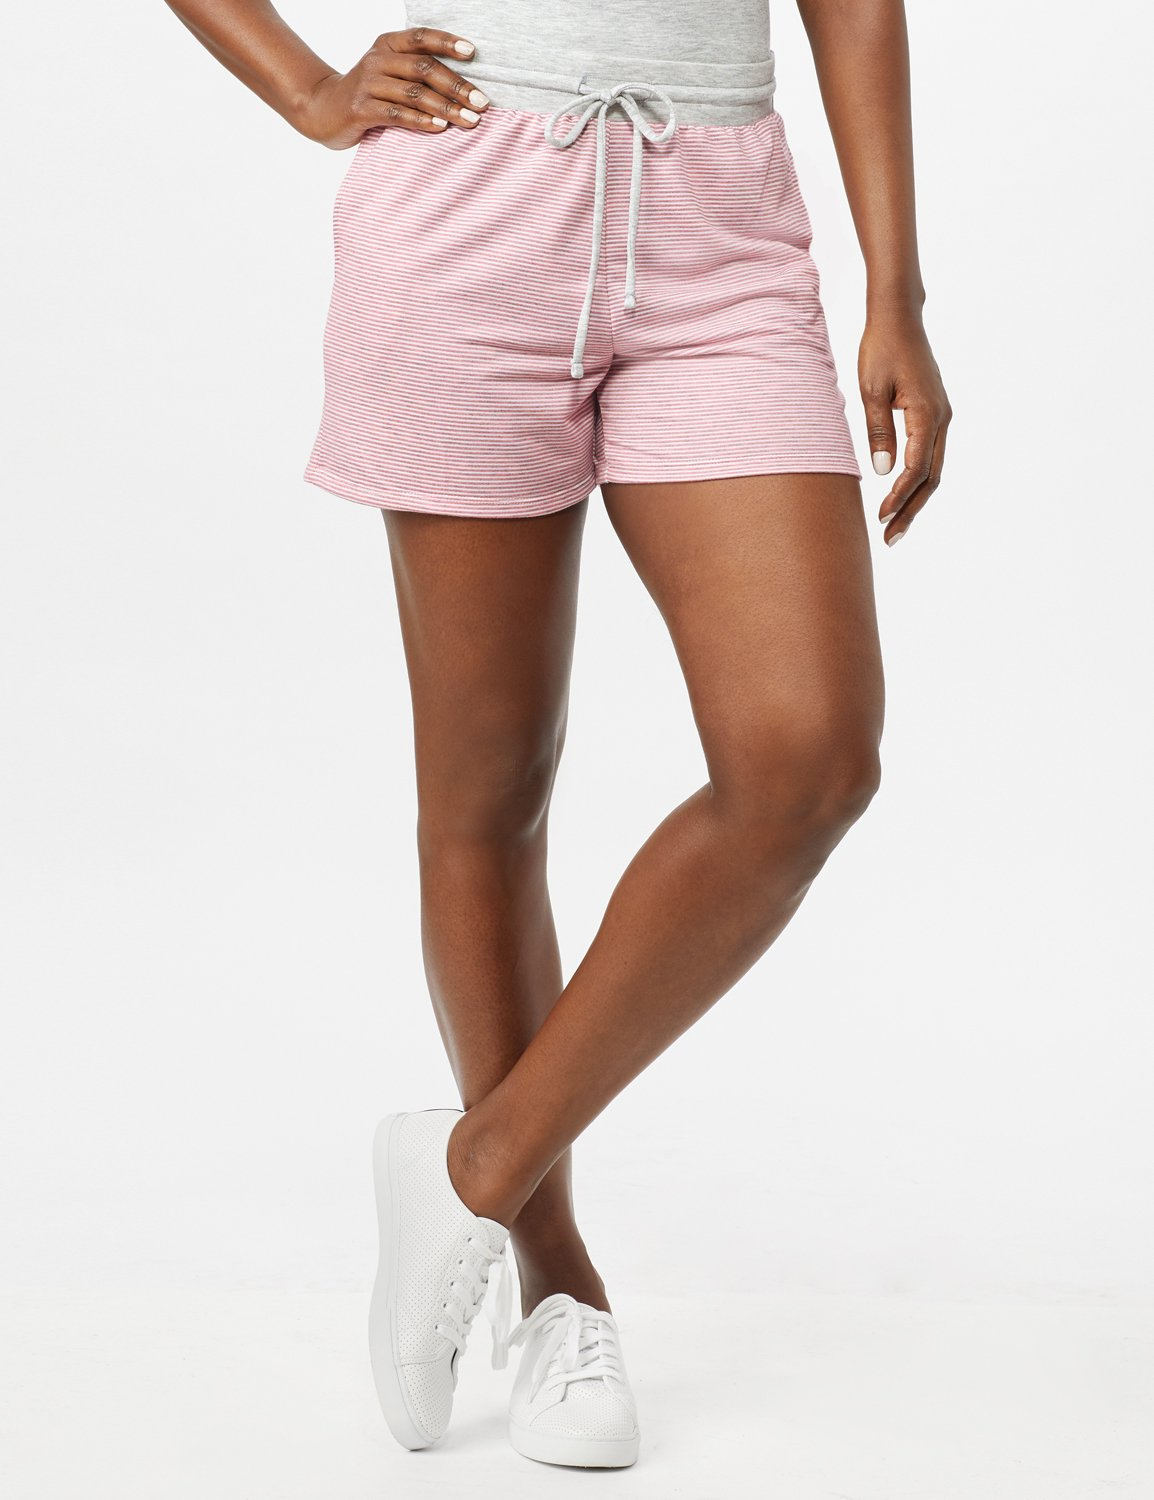 Stripe Drawstring Knit Shorts -Pink - Front